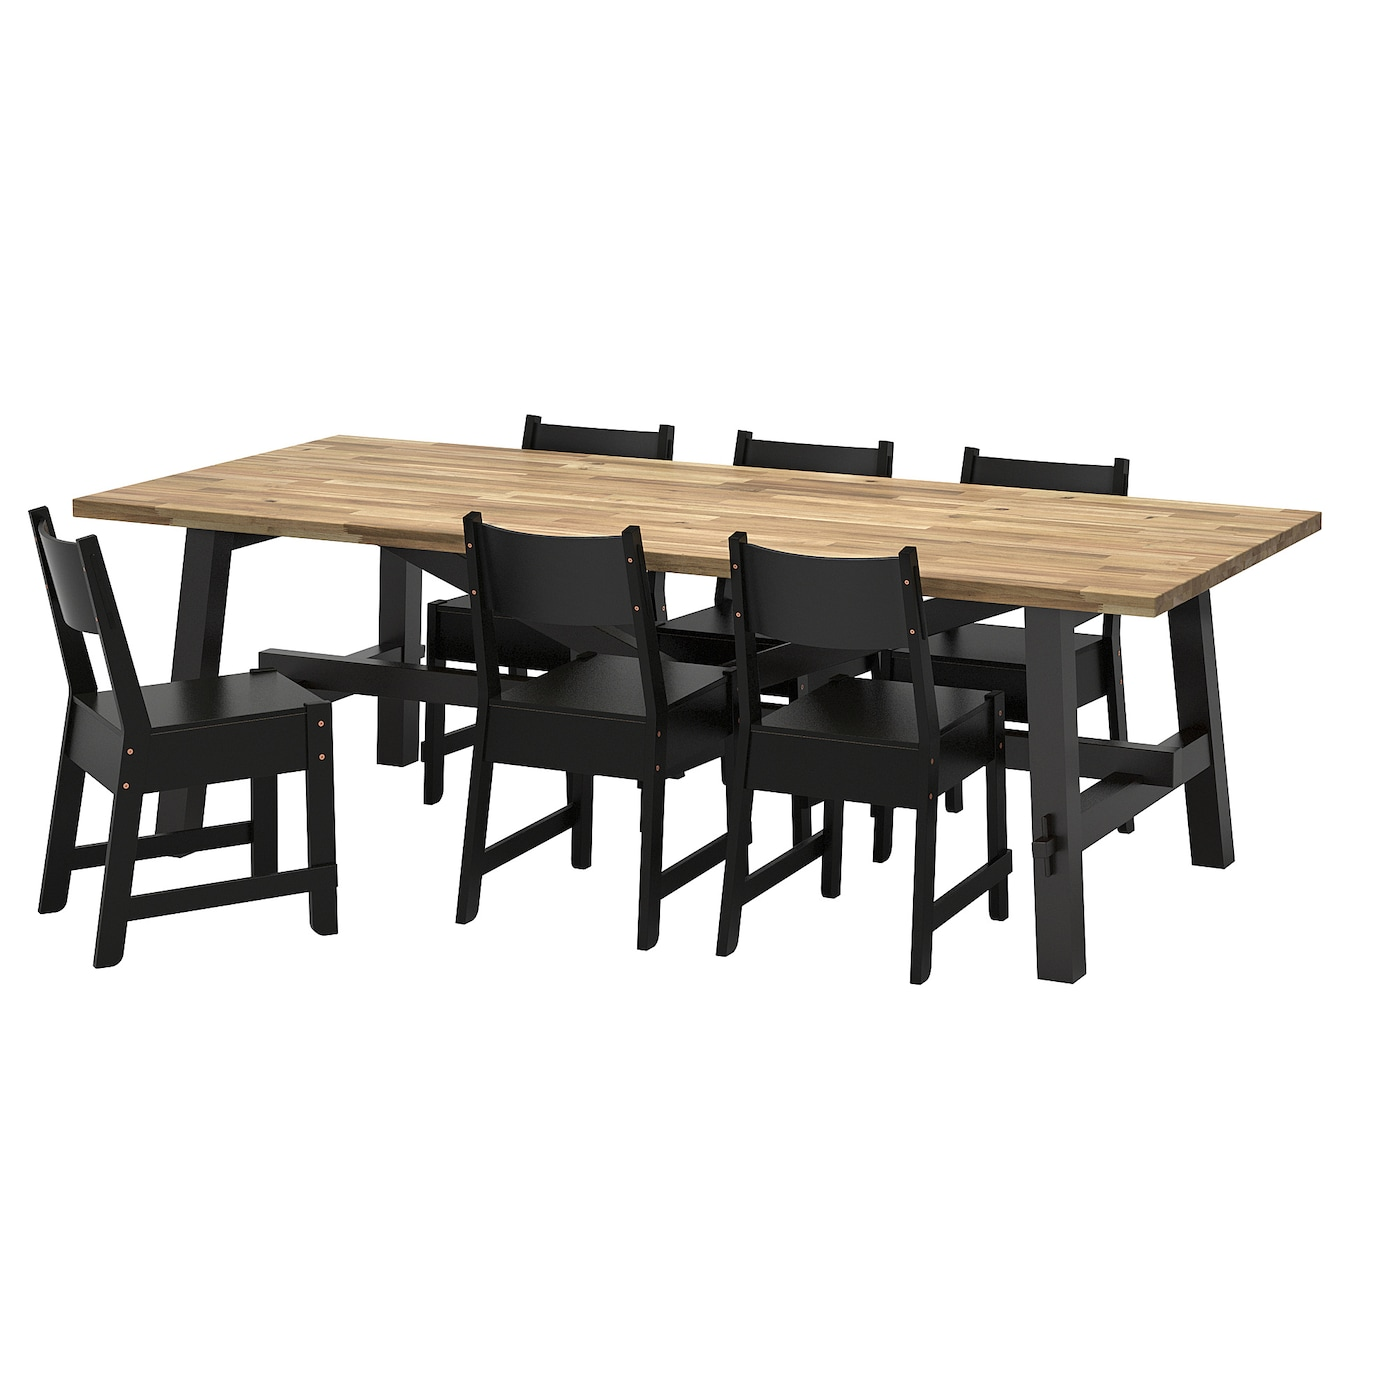 IKEA NORRÅKER/SKOGSTA table and 6 chairs